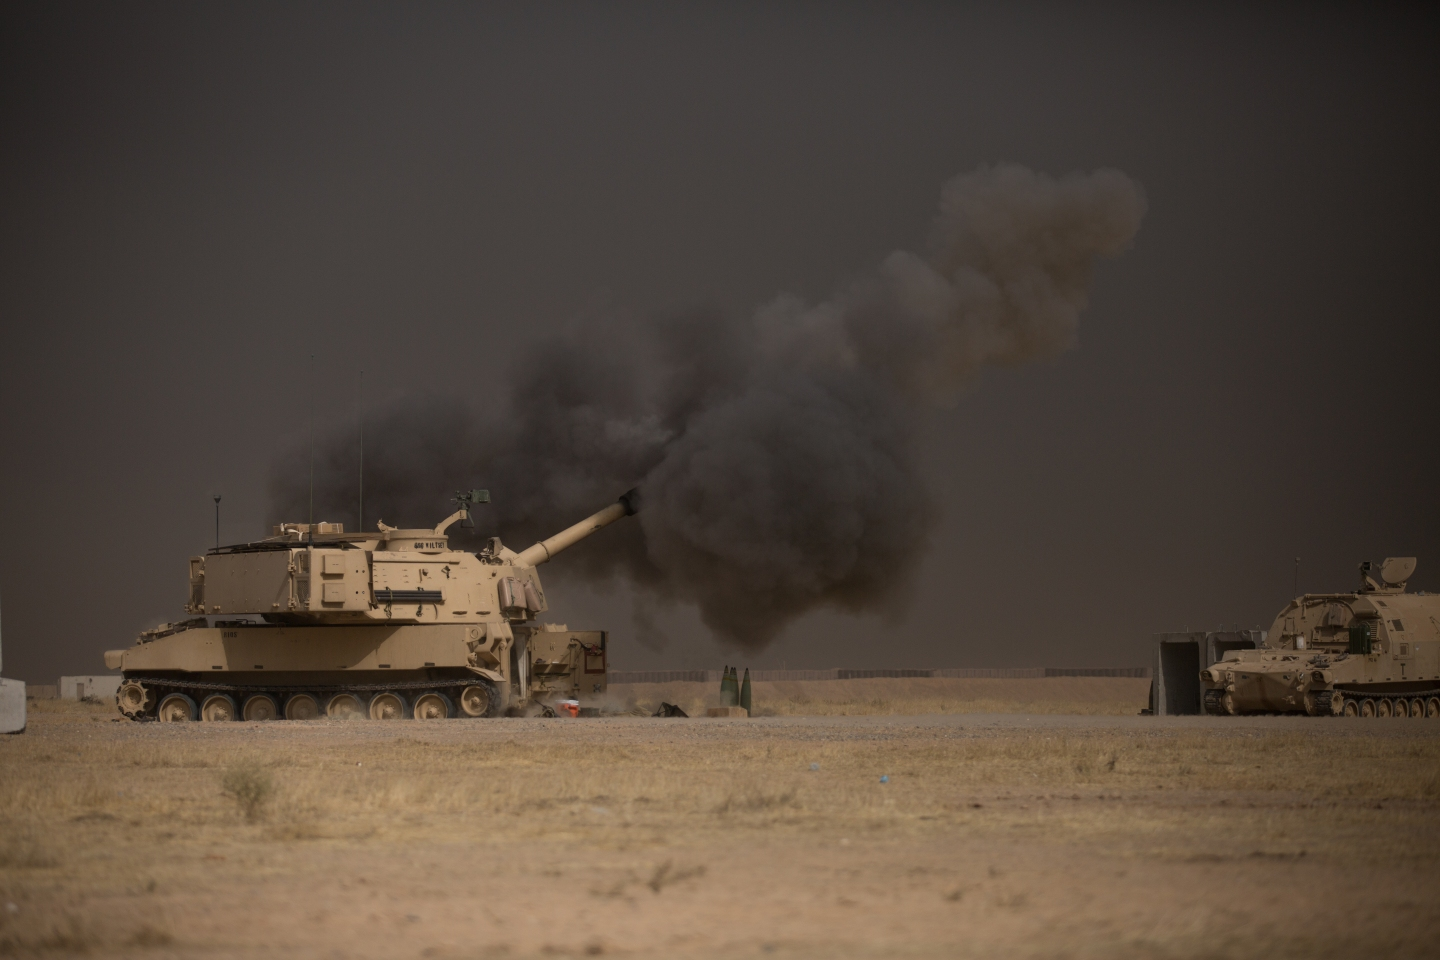 A U.S. Army M109A6 Paladin conducts a fire mission at Qayyarah West, Iraq, in support of the Iraqi security forcesâ push toward Mosul, Oct. 17, 2016. The support provided by the Paladin teams denies the Islamic State of Iraq and the Levant safe havens while providing the ISF with vital artillery capabilities during their advance. The United States stands with a Coalition of more than 60 international partners to assist and support the Iraqi security forces to degrade and defeat ISIL. (U.S. Army photo by Spc. Christopher Brecht)